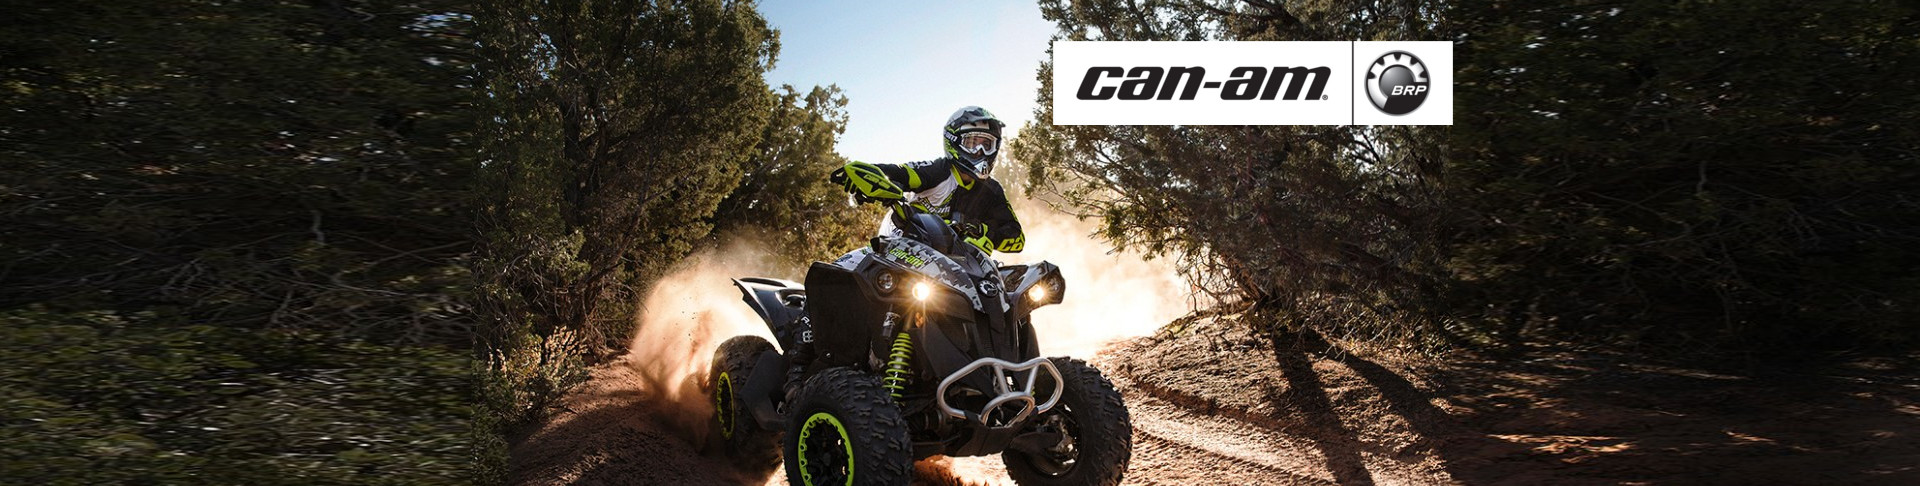 can-am ATV by ZCZ